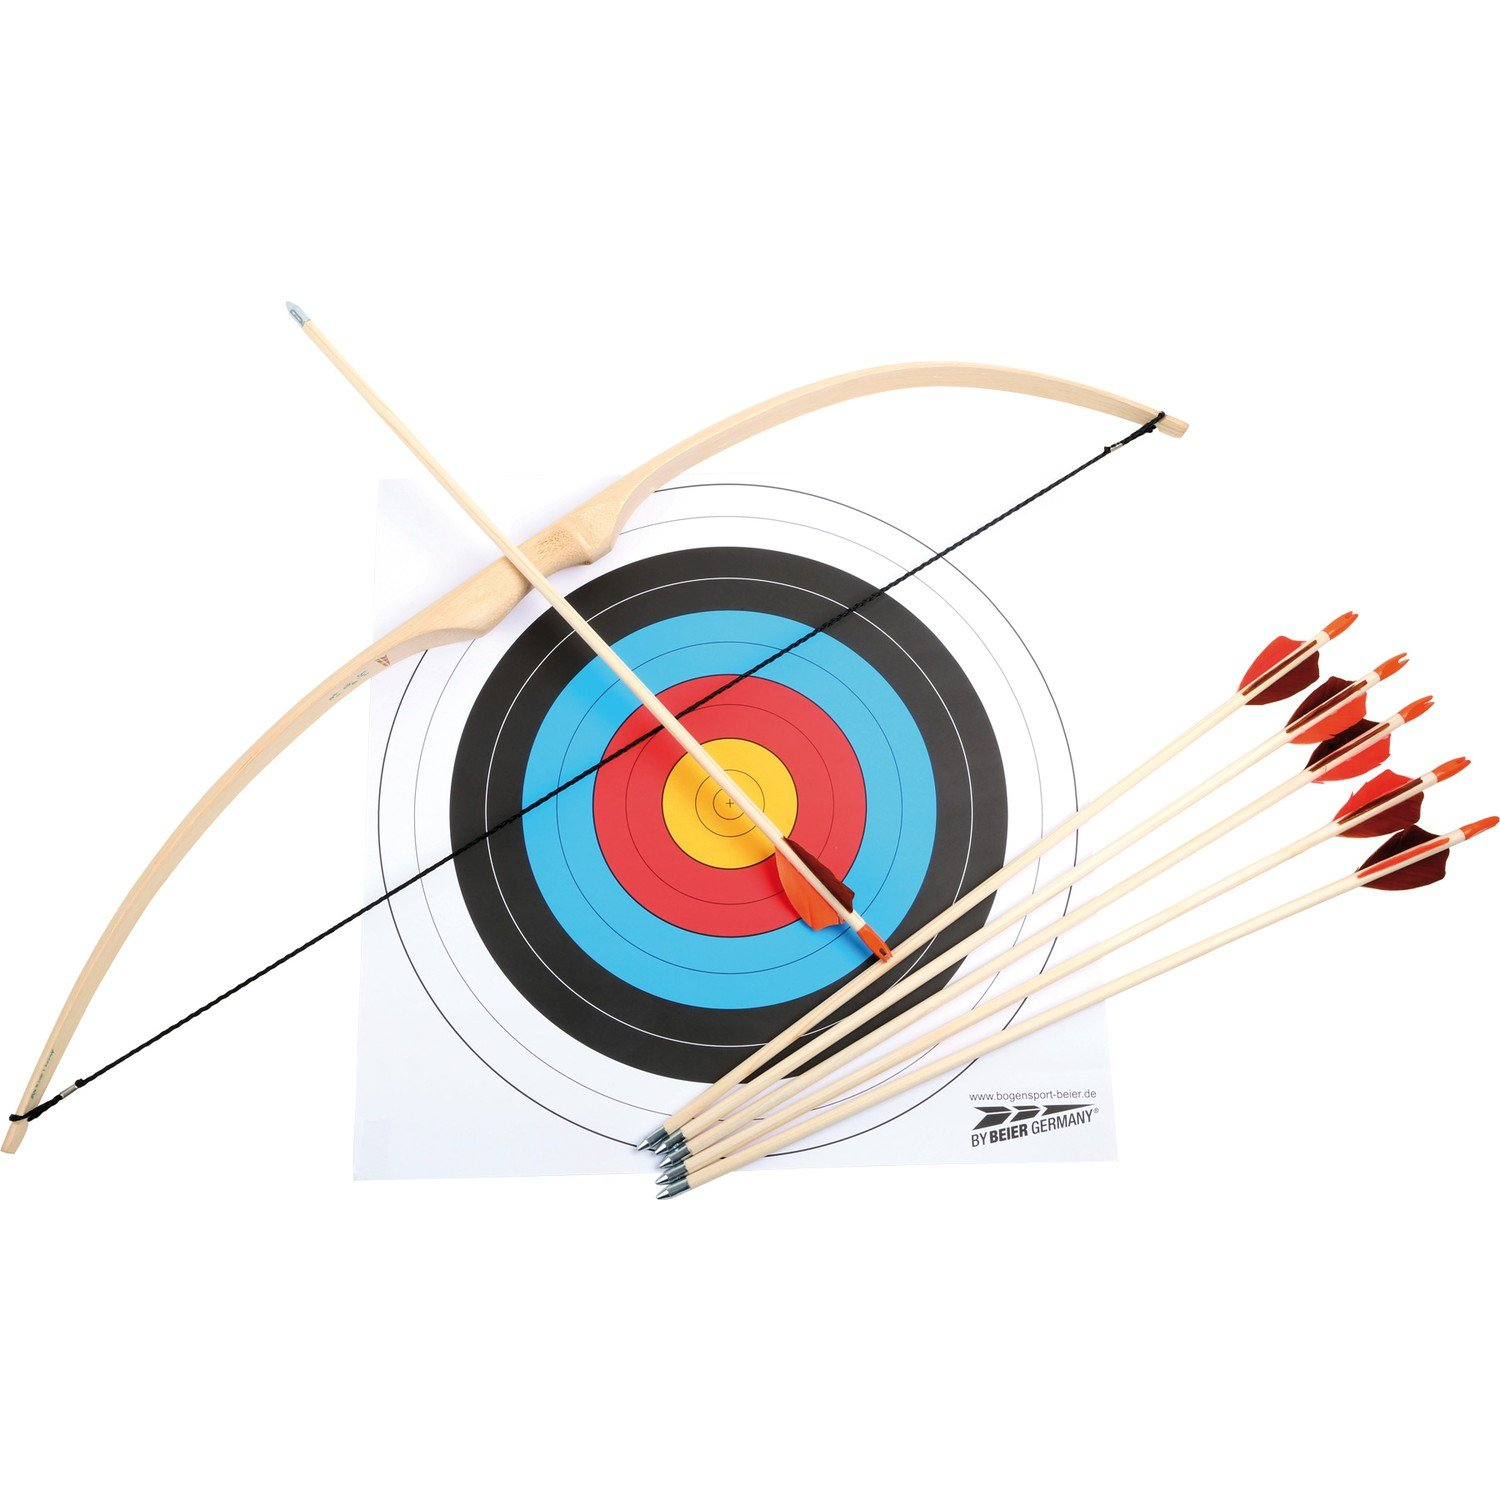 Small foot 6743 wooden bow and arrow archery set, incl. bow, 6 arrows and target, 6 years and older